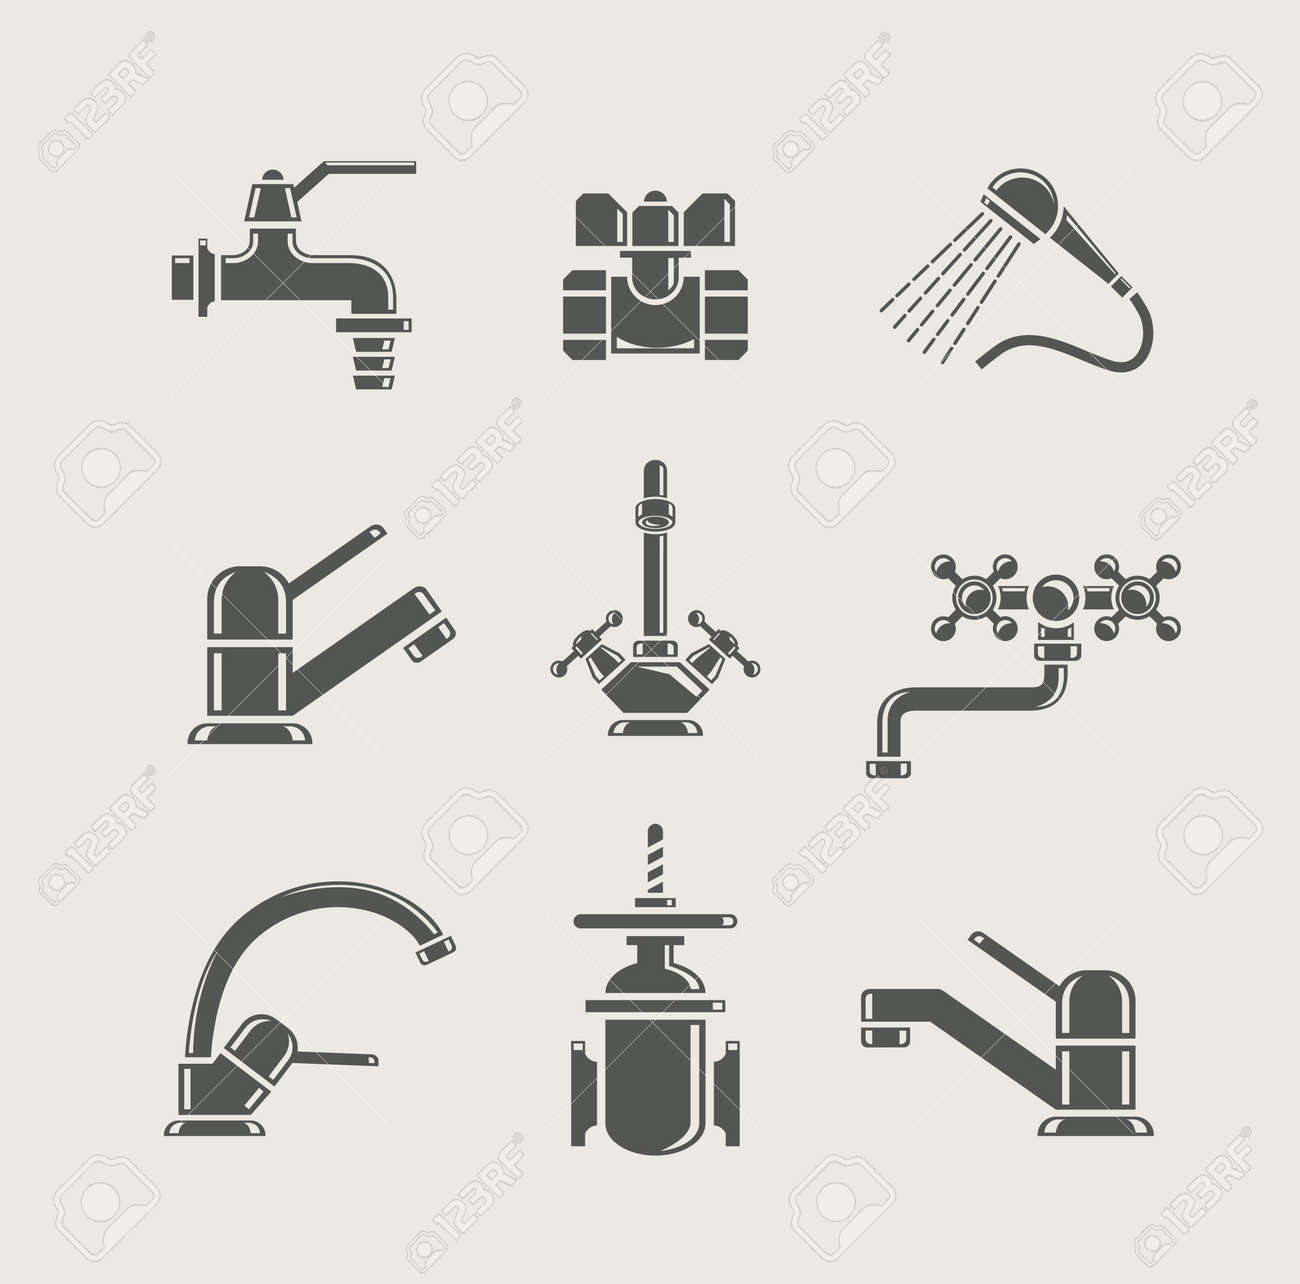 water-supply faucet mixer, tap, valve for water set icon - 13538969